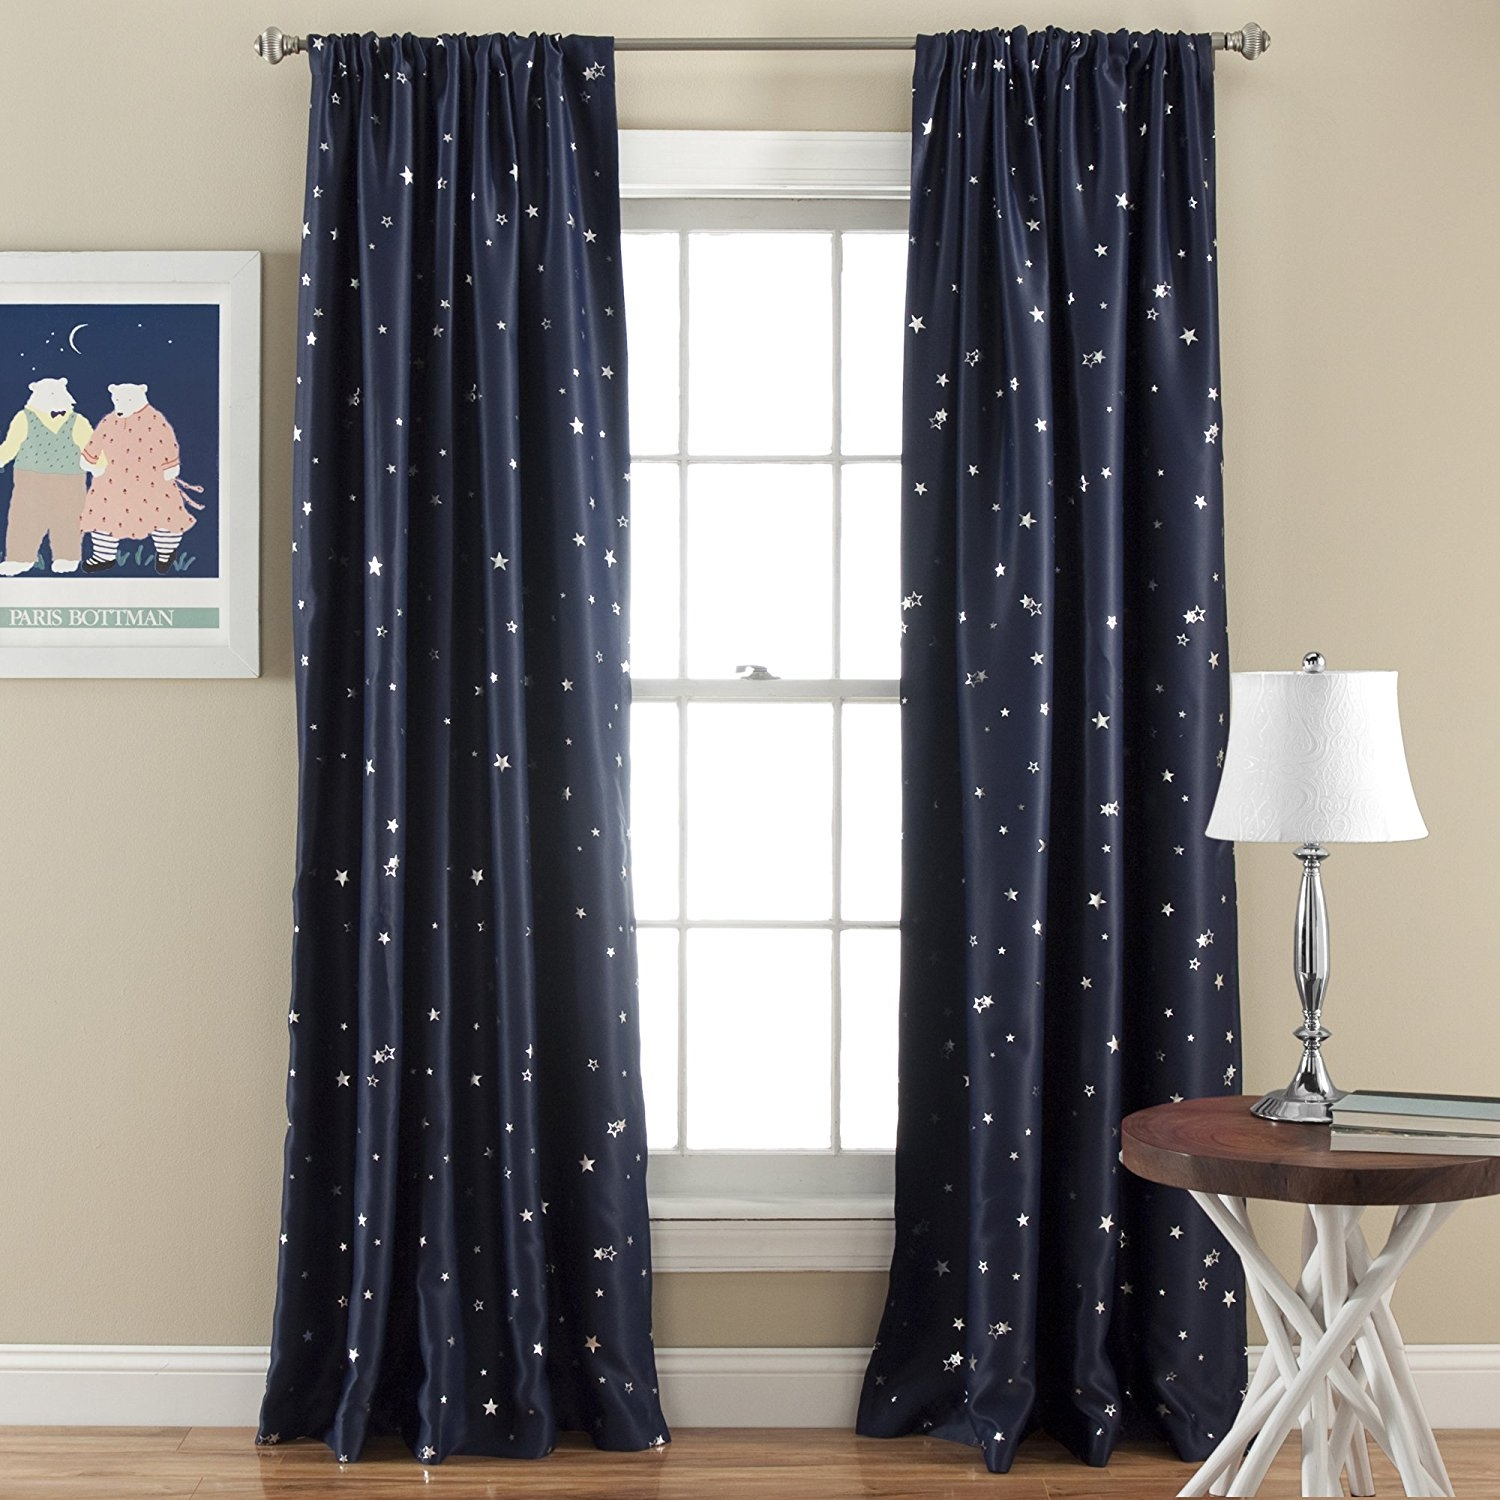 Online Get Cheap Thick Curtains Aliexpress Alibaba Group With Regard To Thick Bedroom Curtains (Image 7 of 15)